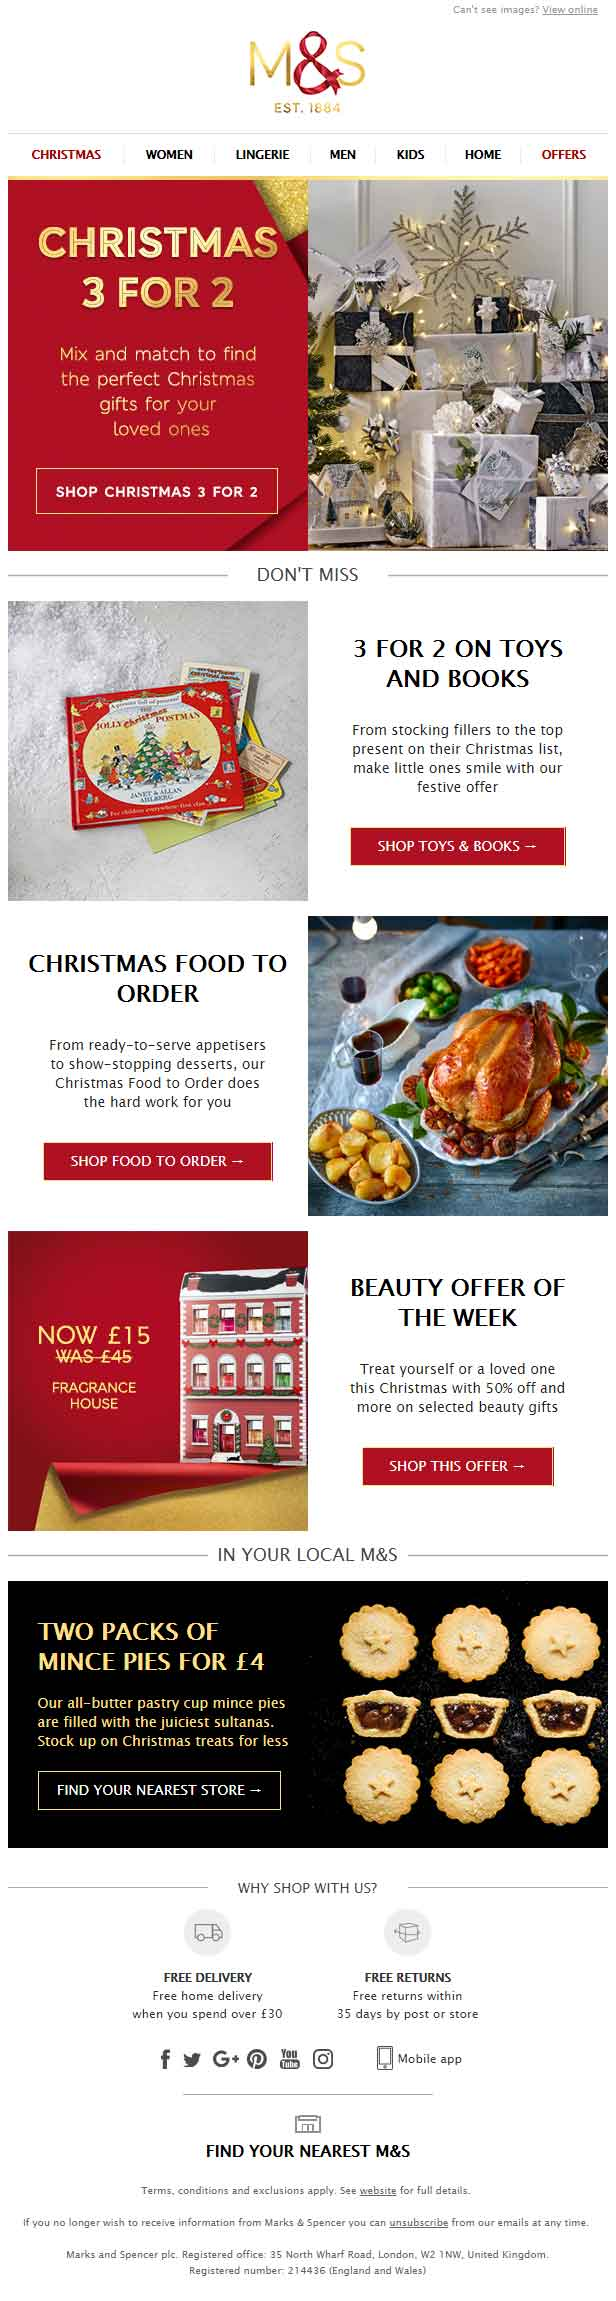 Christmas Email Template_M&S